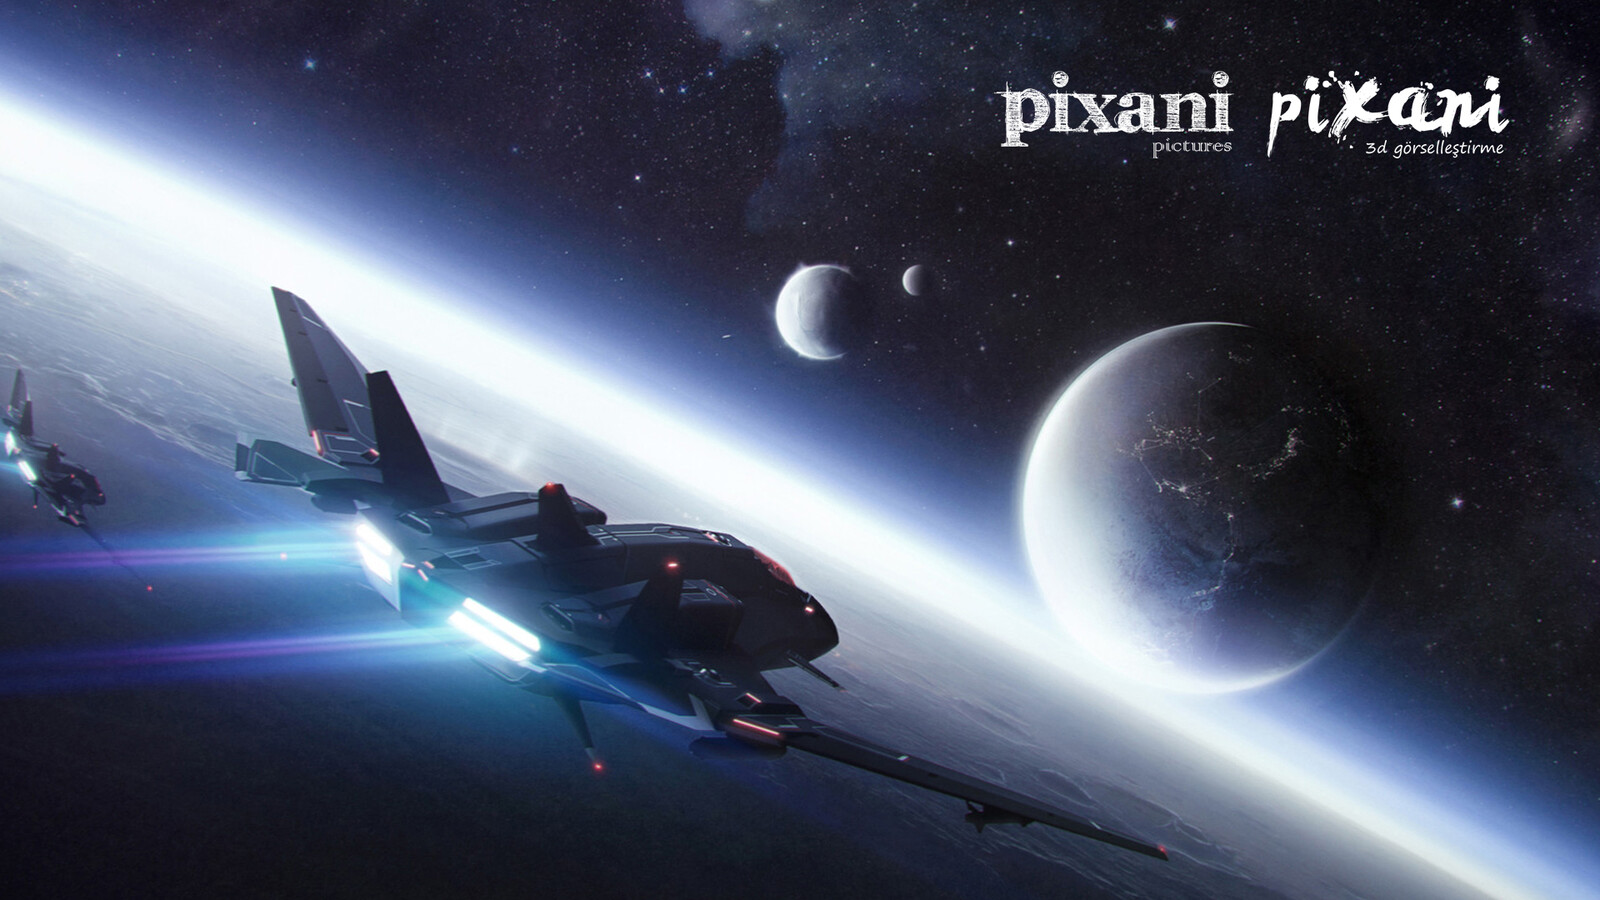 Pixani Studios is expert on environment and architectural visualization & animation.  We're representing you our modeling and rendering works based on Space visualizations and Science Fiction 3D scenes.